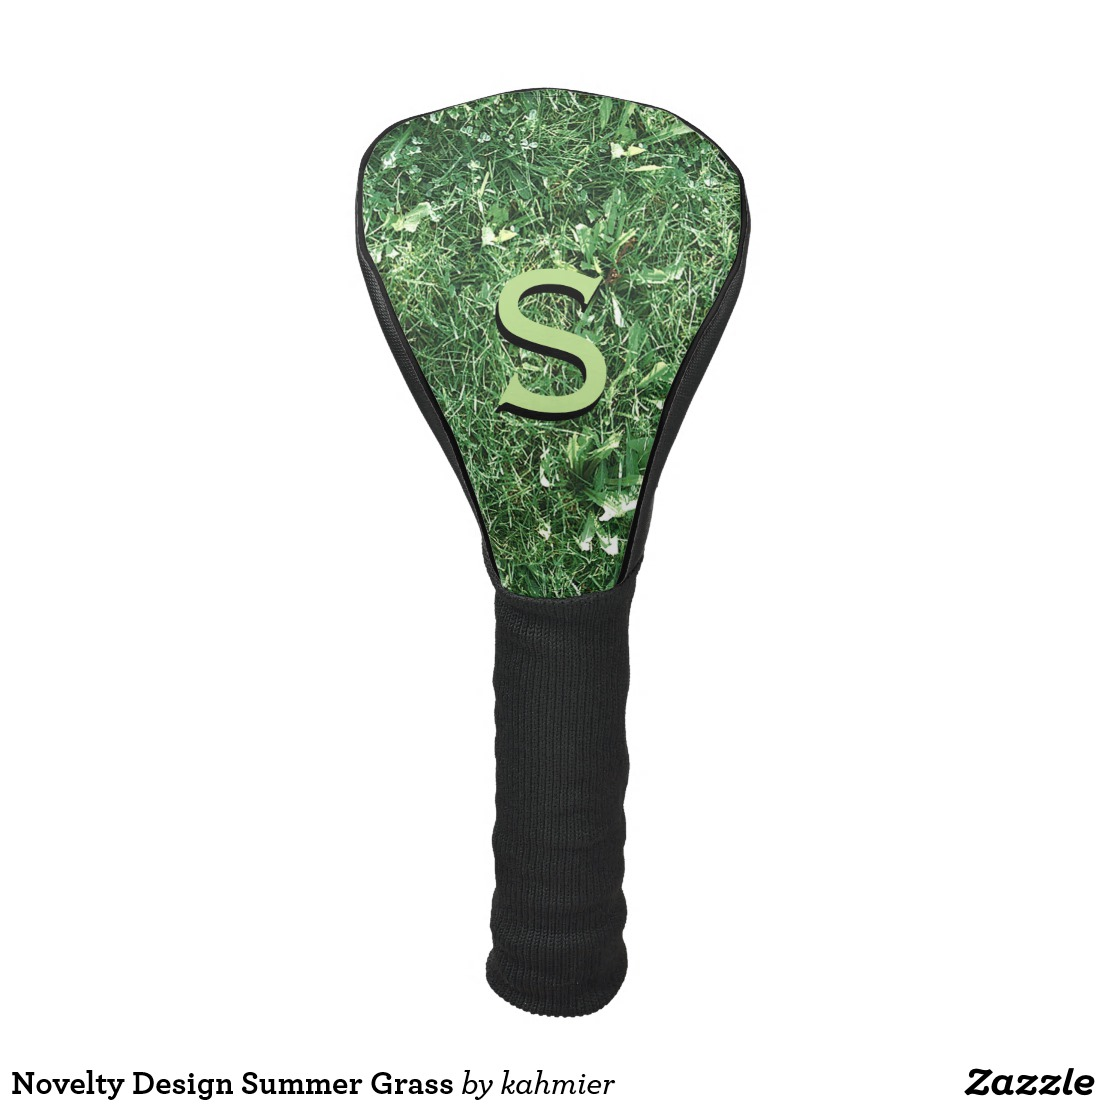 Novelty Design Summer Grass Golf Head Cover